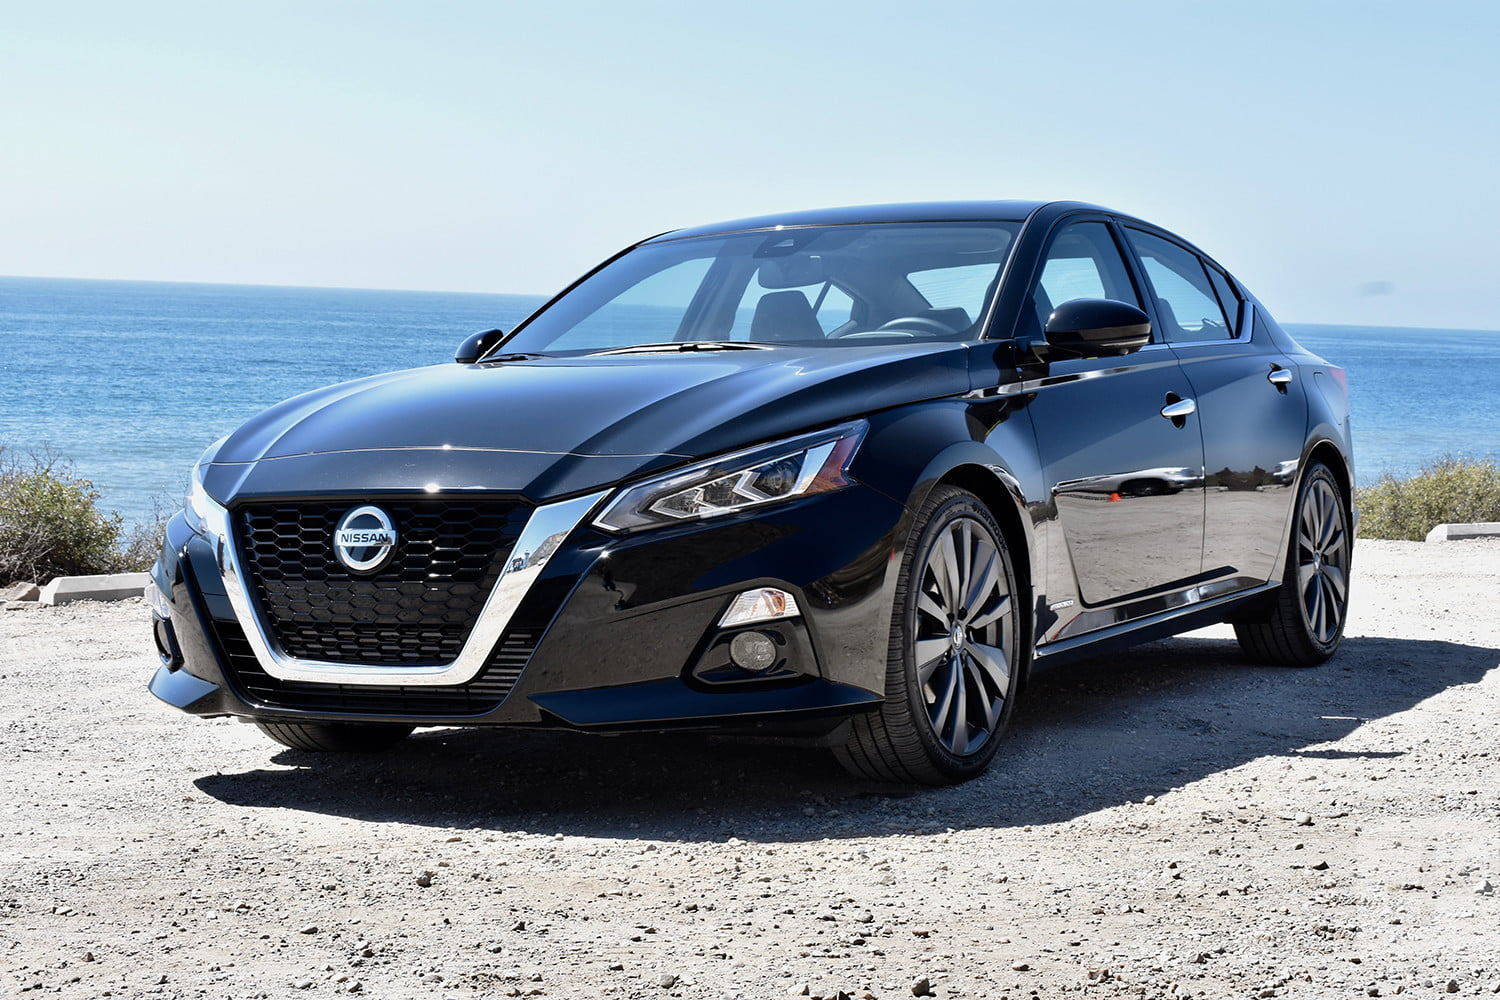 2019 Nissan Altima First Drive Review | Digital Trends